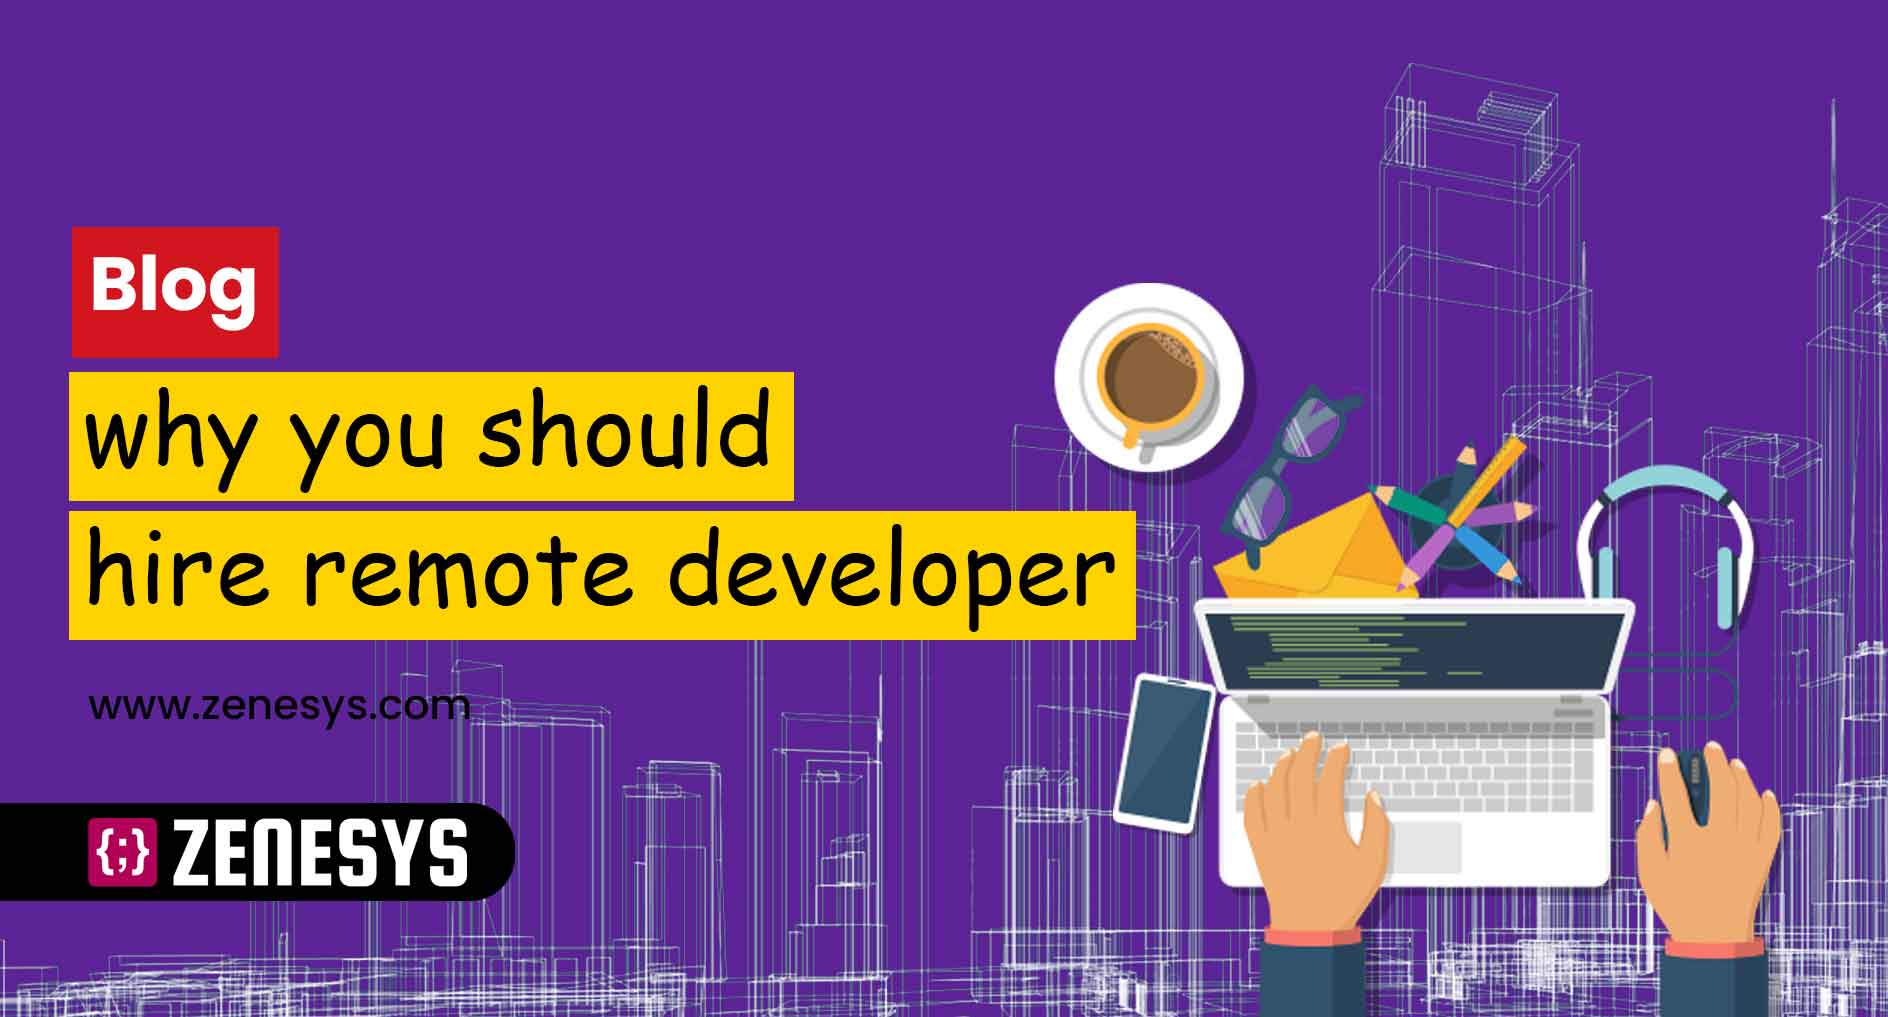 Advantages of Hiring Remote Developers